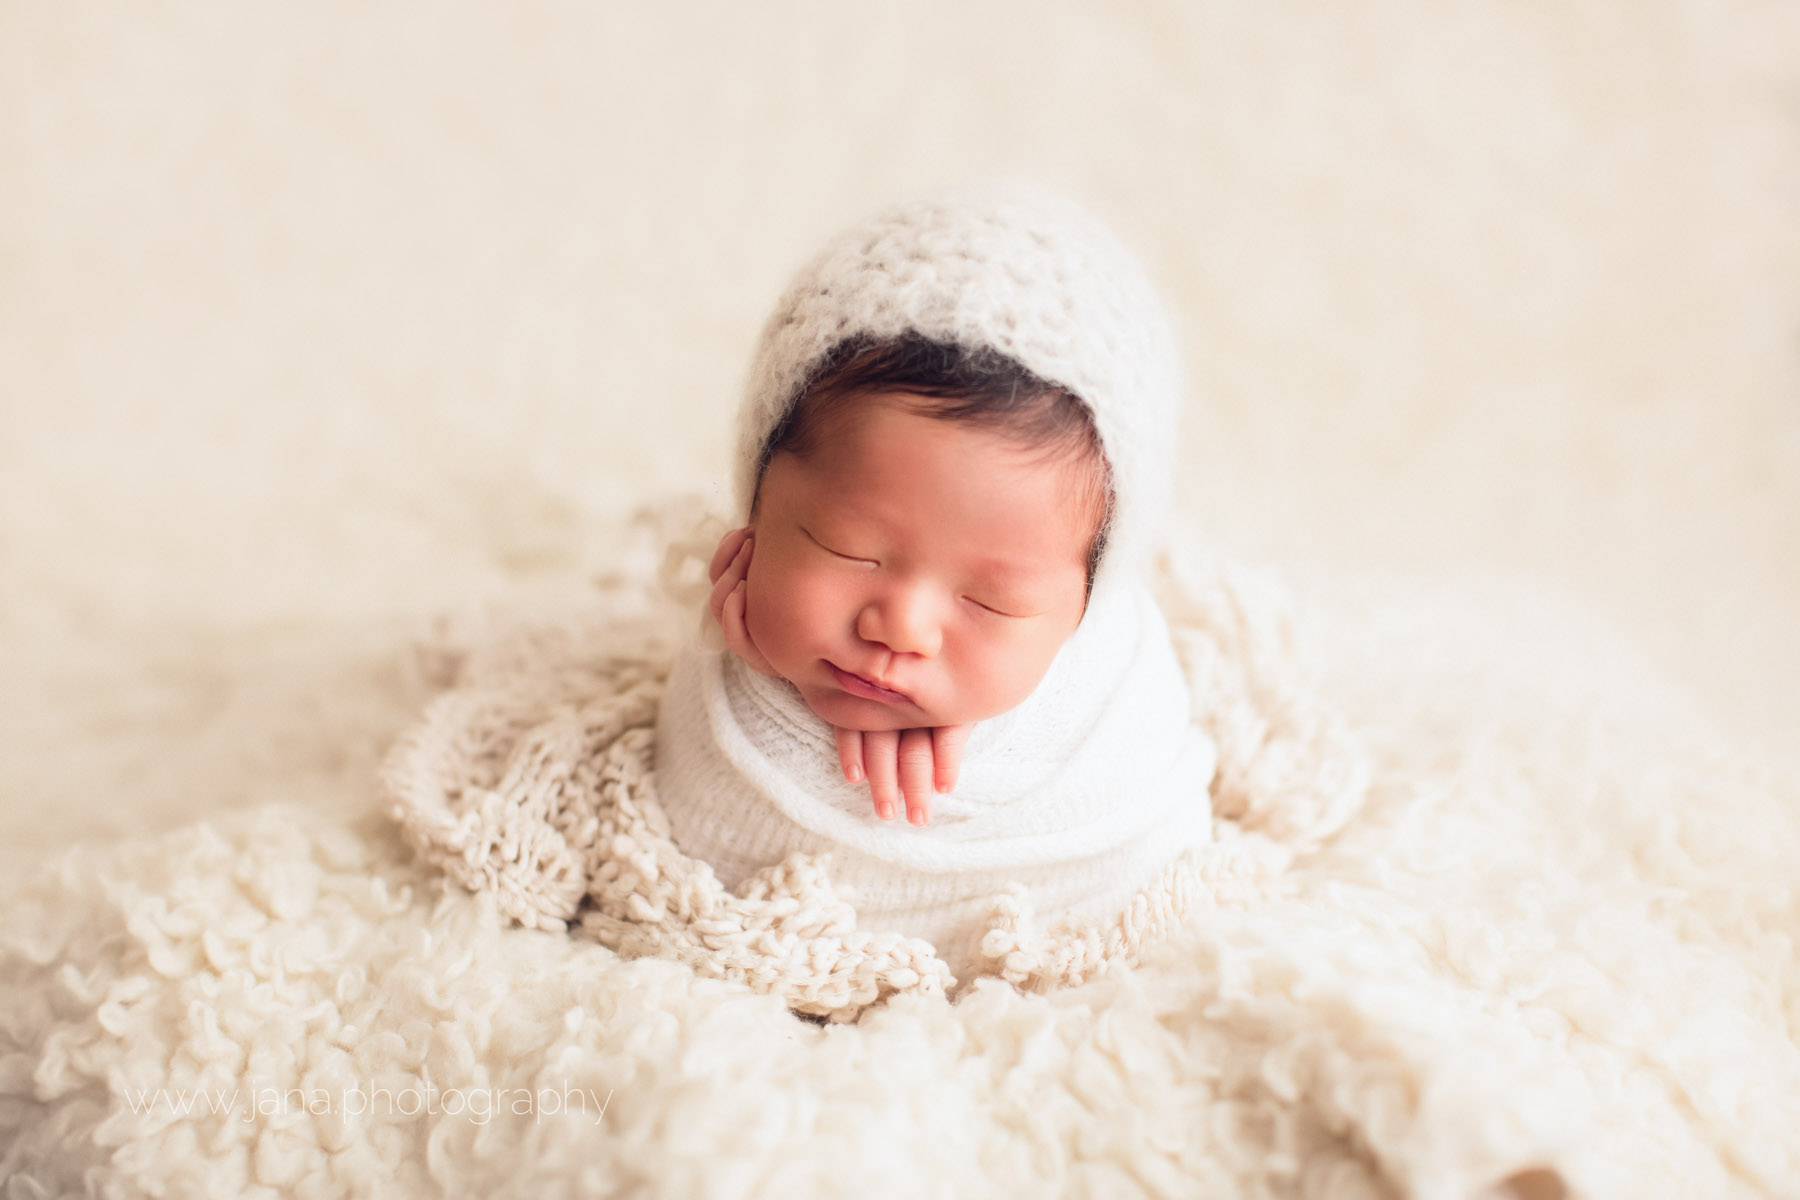 Newborn cake smash photography, Vancouver newborn & cake smash photography | Kenzo